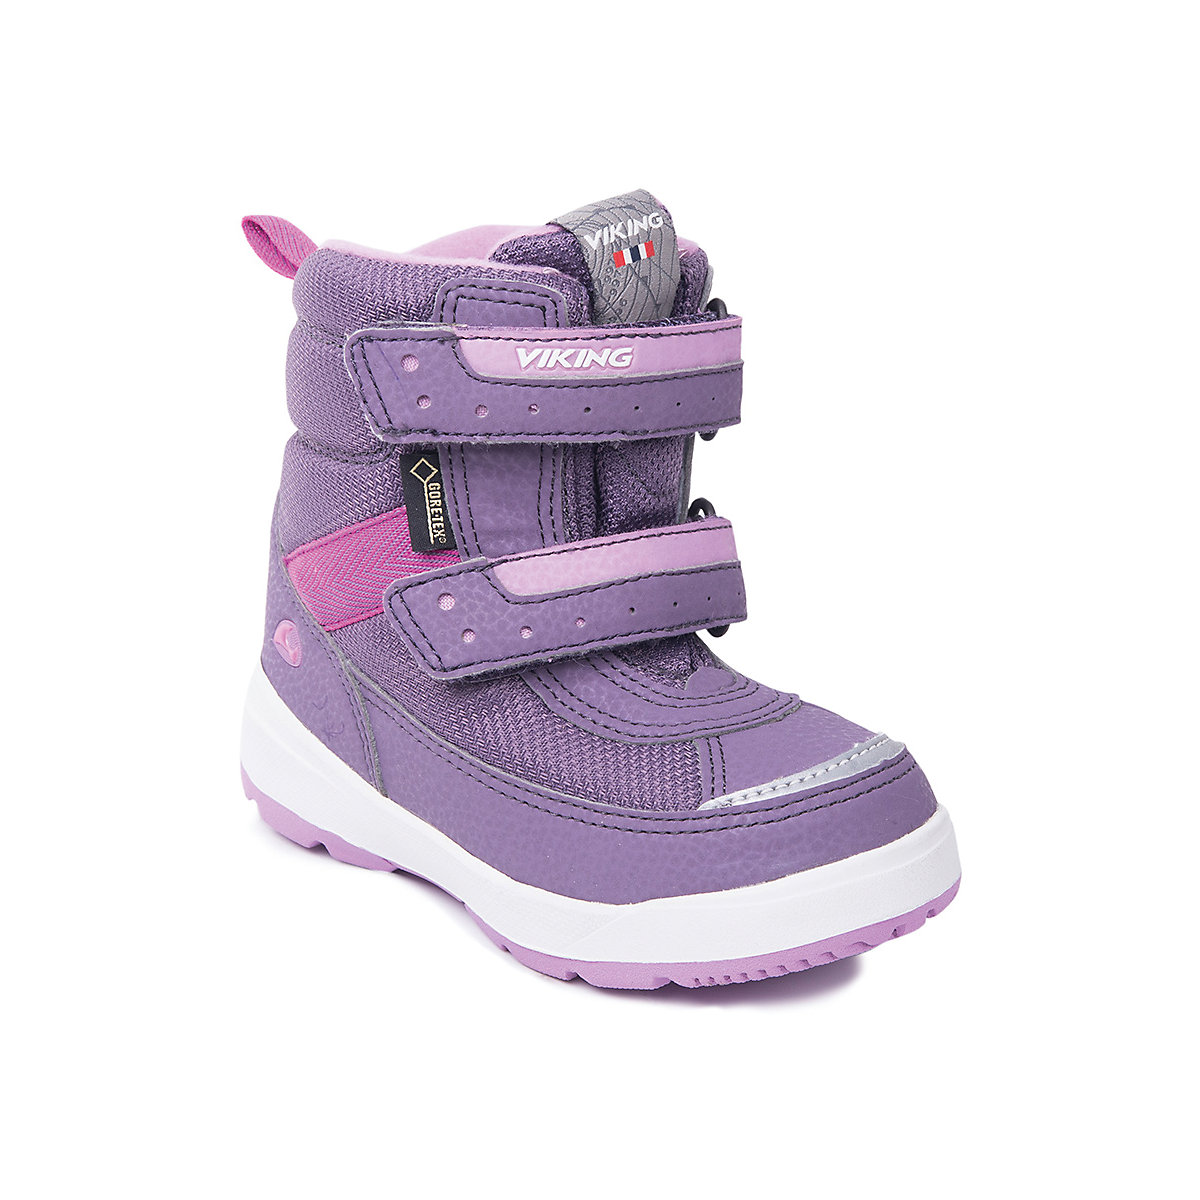 VIKING Boots 7169200 Winter Baby Girl shoes free shipping hot new style popular 2016yards american girl doll shoes s43